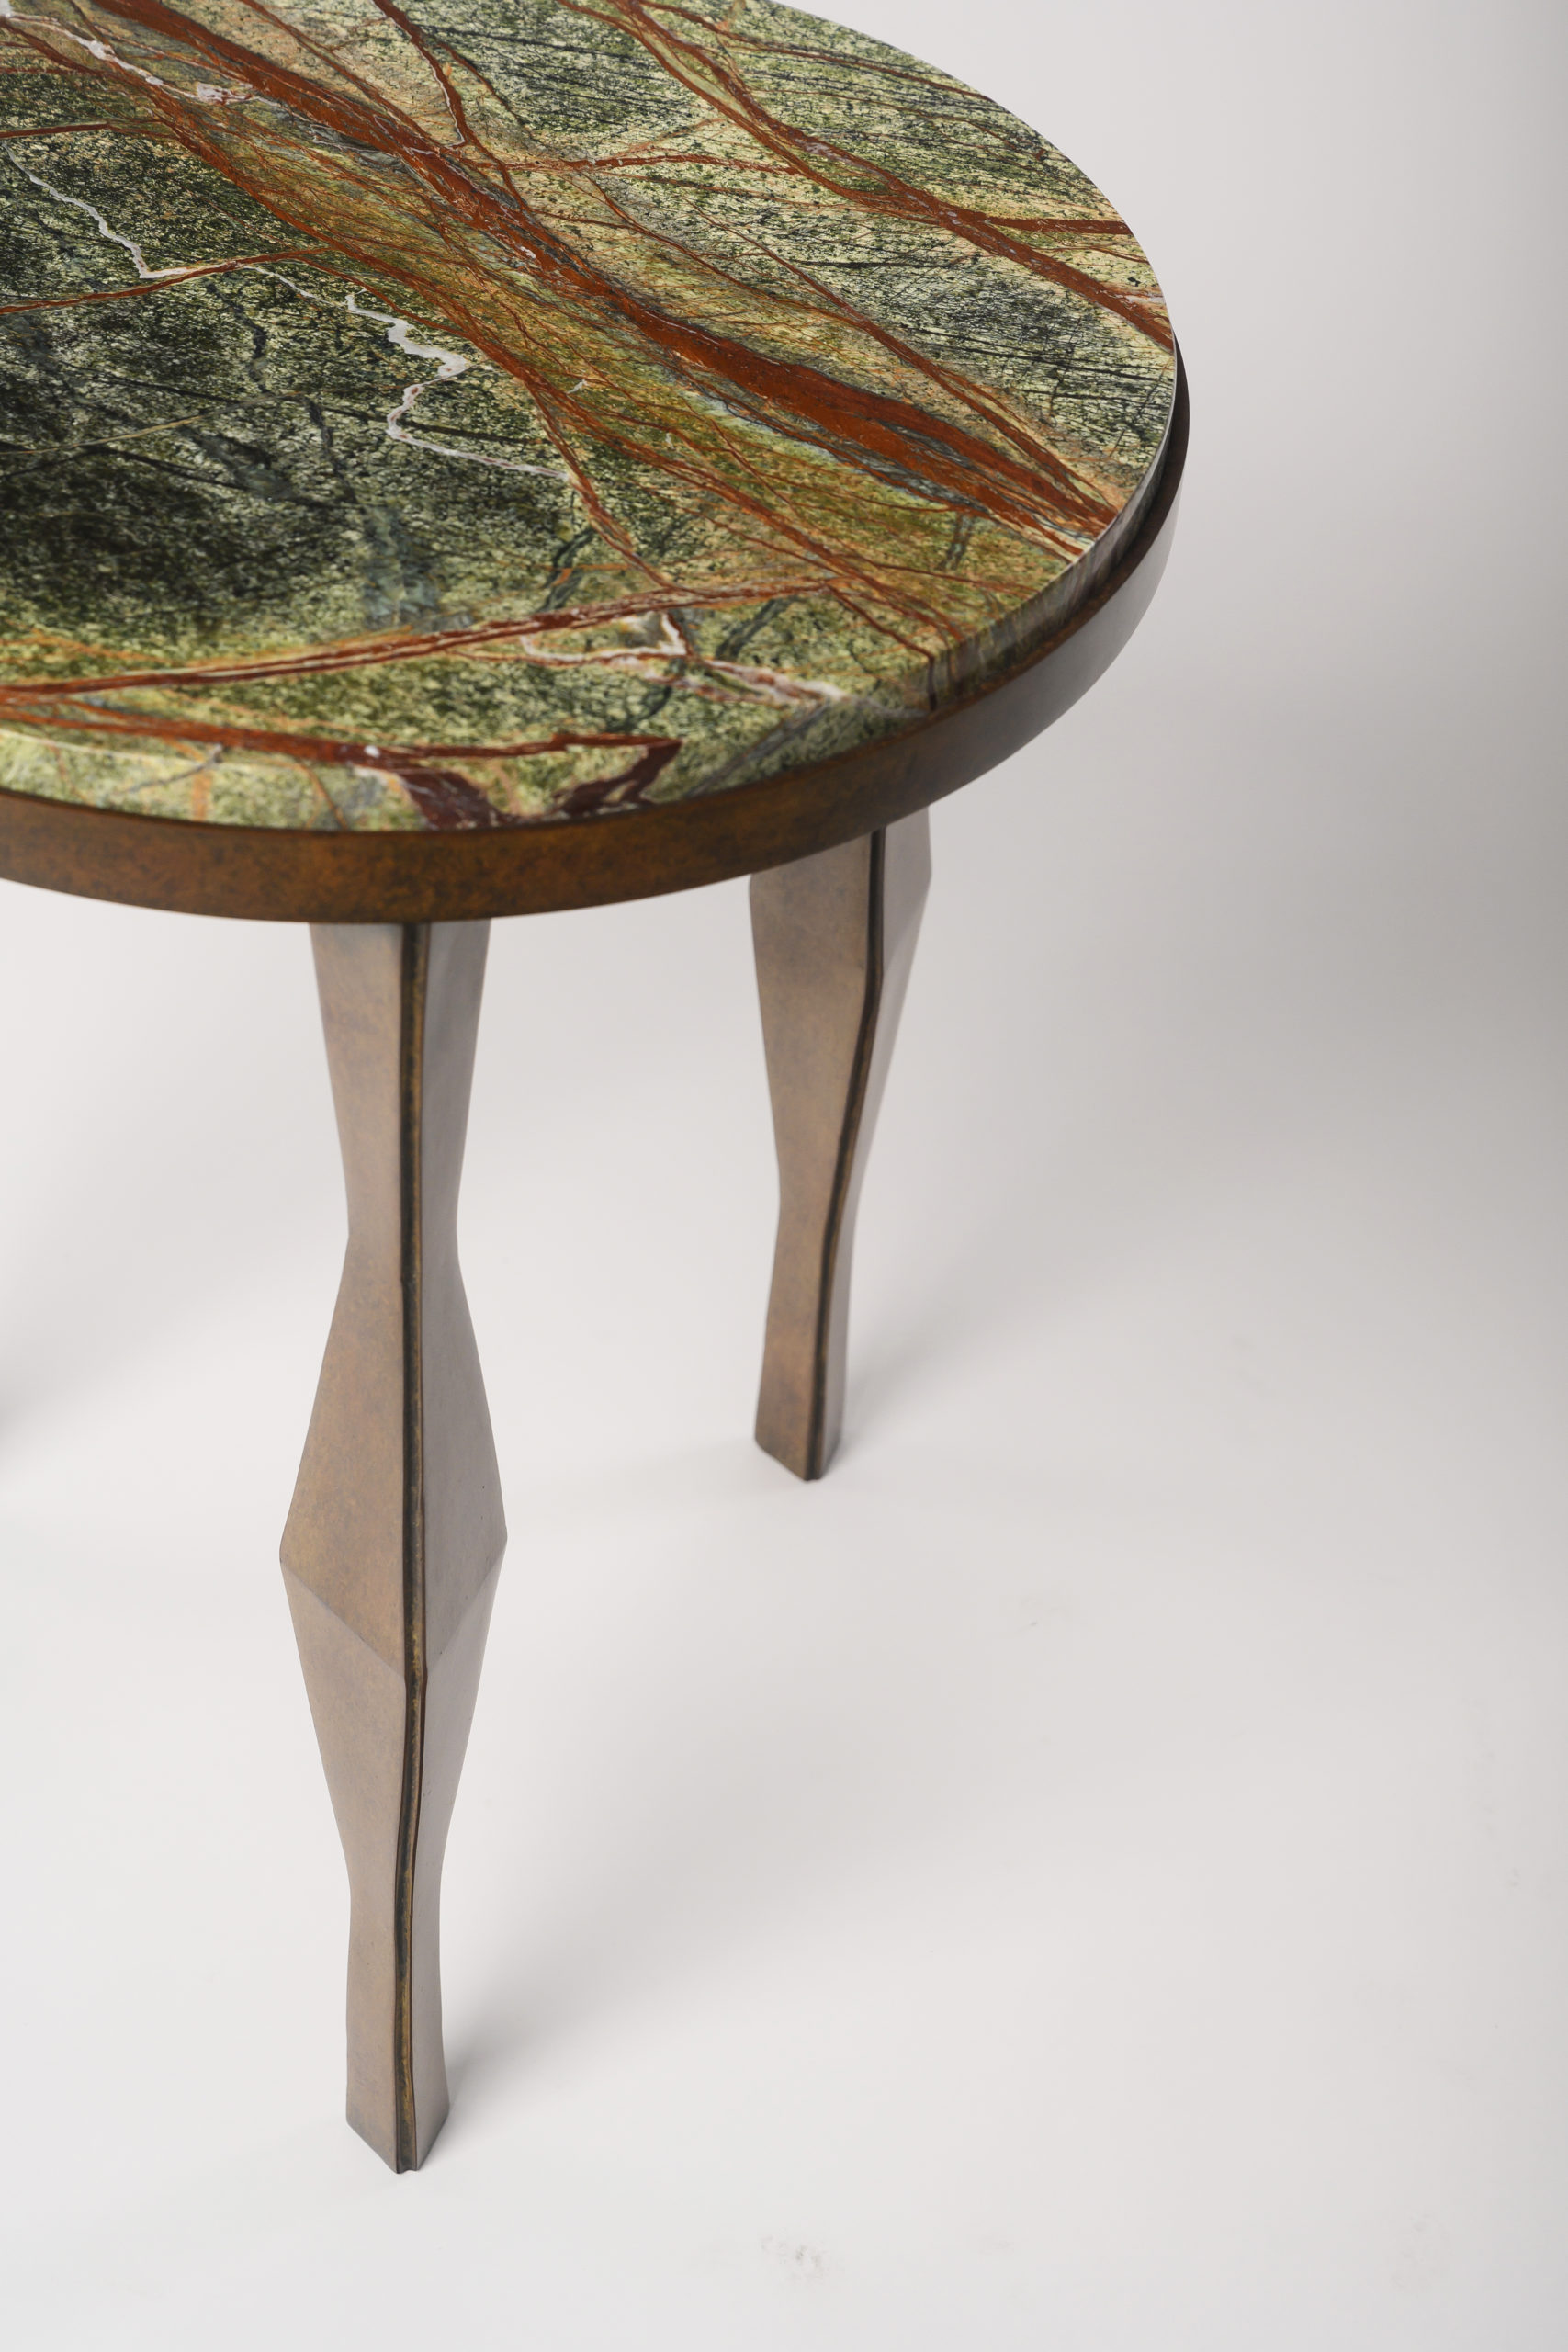 NYDC_WNWN_products_david_sutherland_Arthur_side_table_BEE_4974